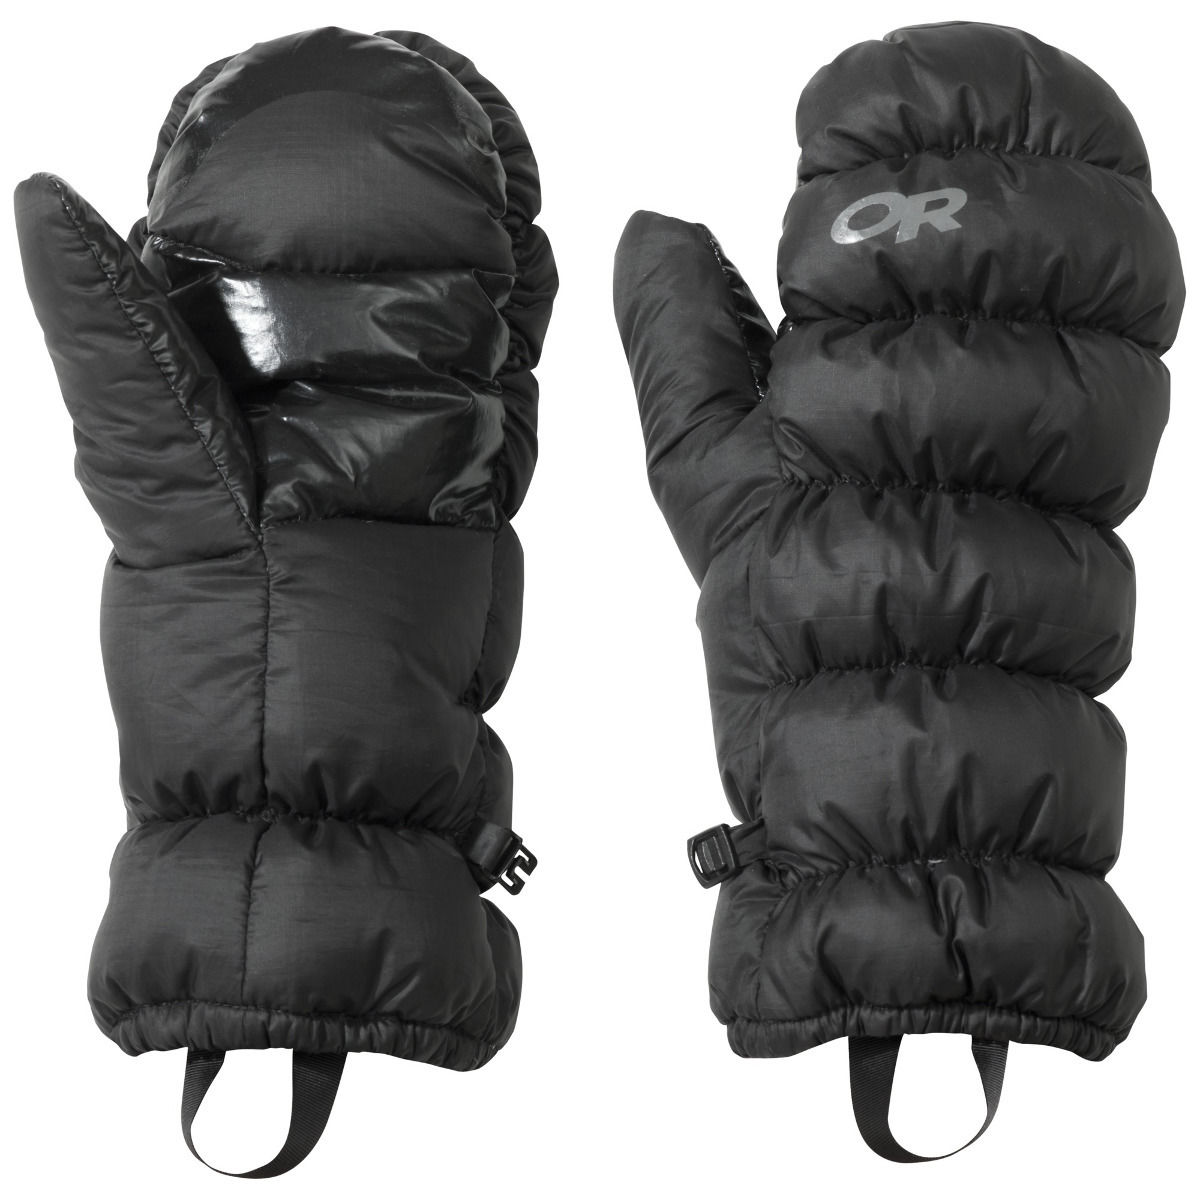 Outdoor Research Transcendent Mitten